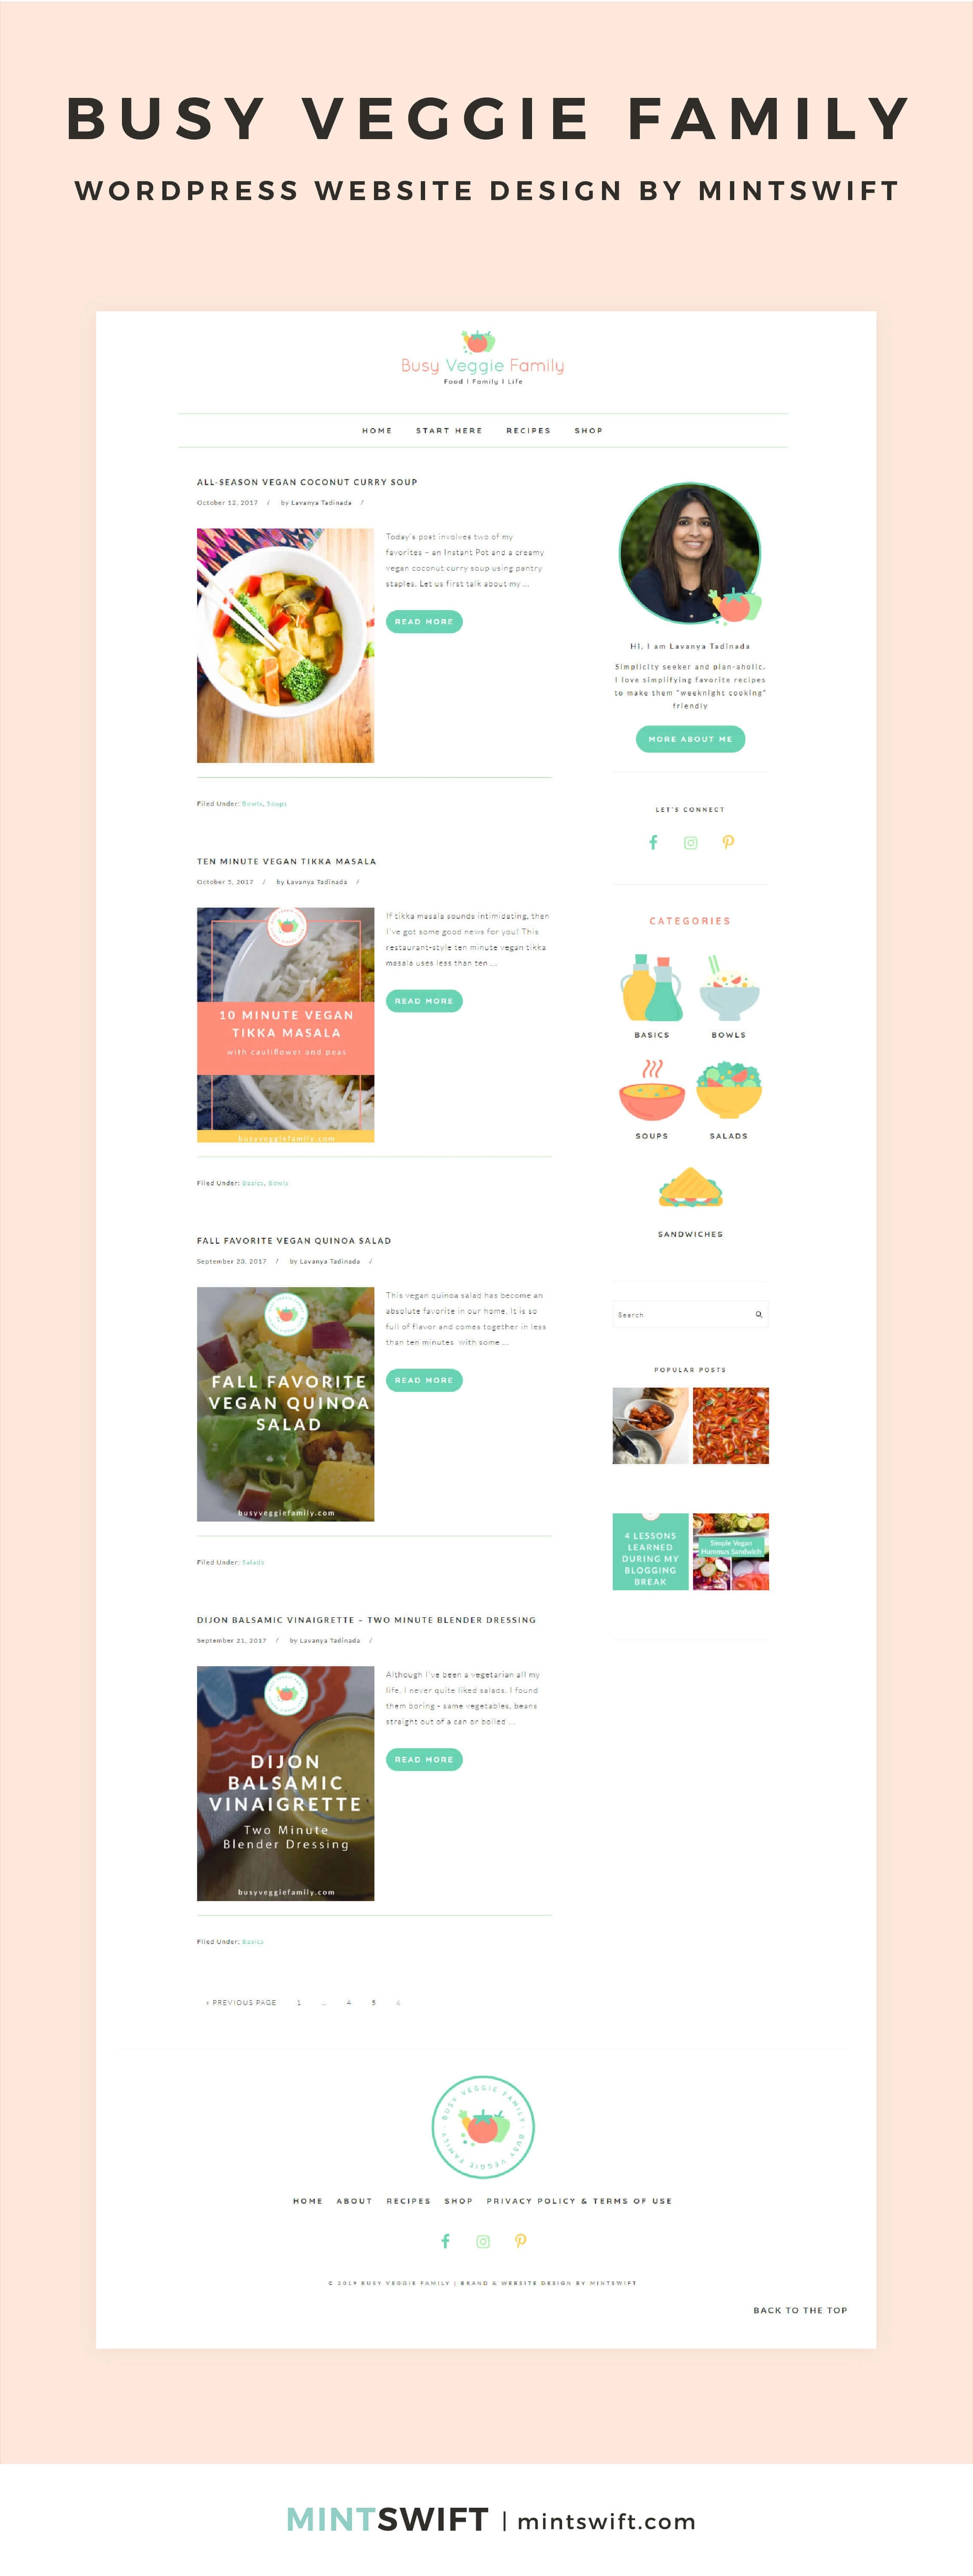 Busy Veggie Family - WordPress Website Design by MintSwift